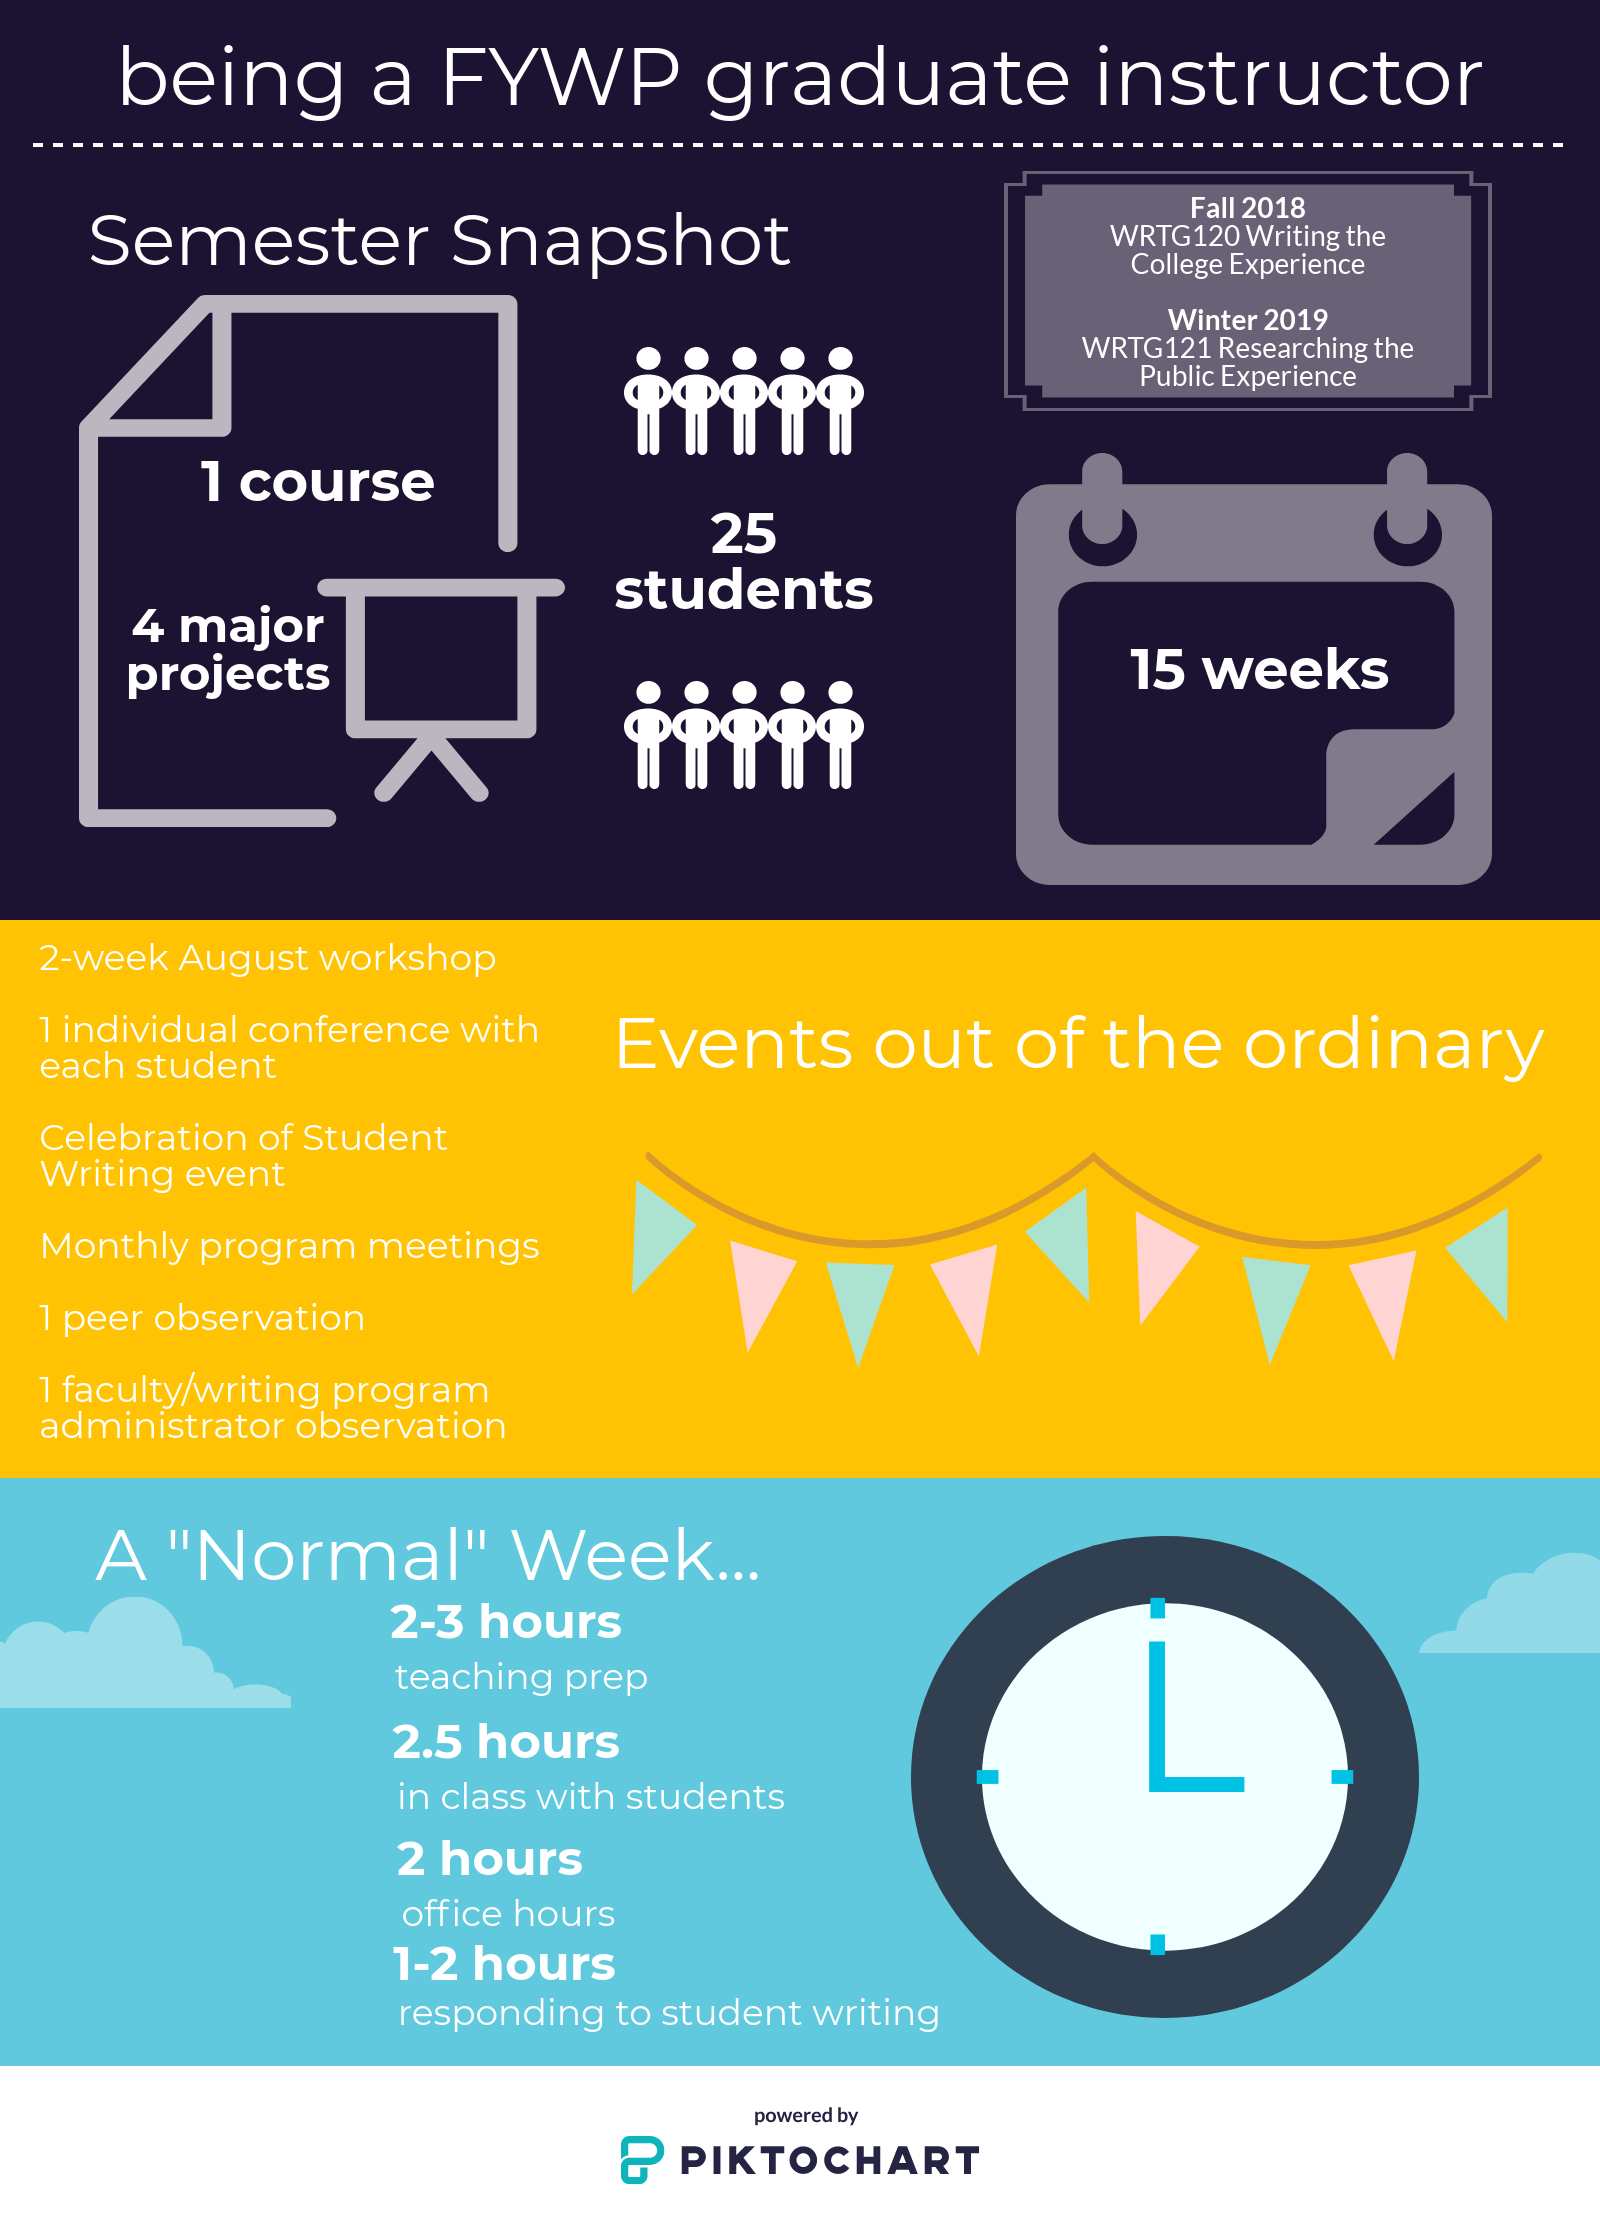 Being a FYWP Graduate Instructor. The infographic orients prospective graduate teaching assistants to the position, offering a semester snapshot that accounts for typical weeks and special events. Developed by Rachel Gramer, Associate Director of the FYWP.